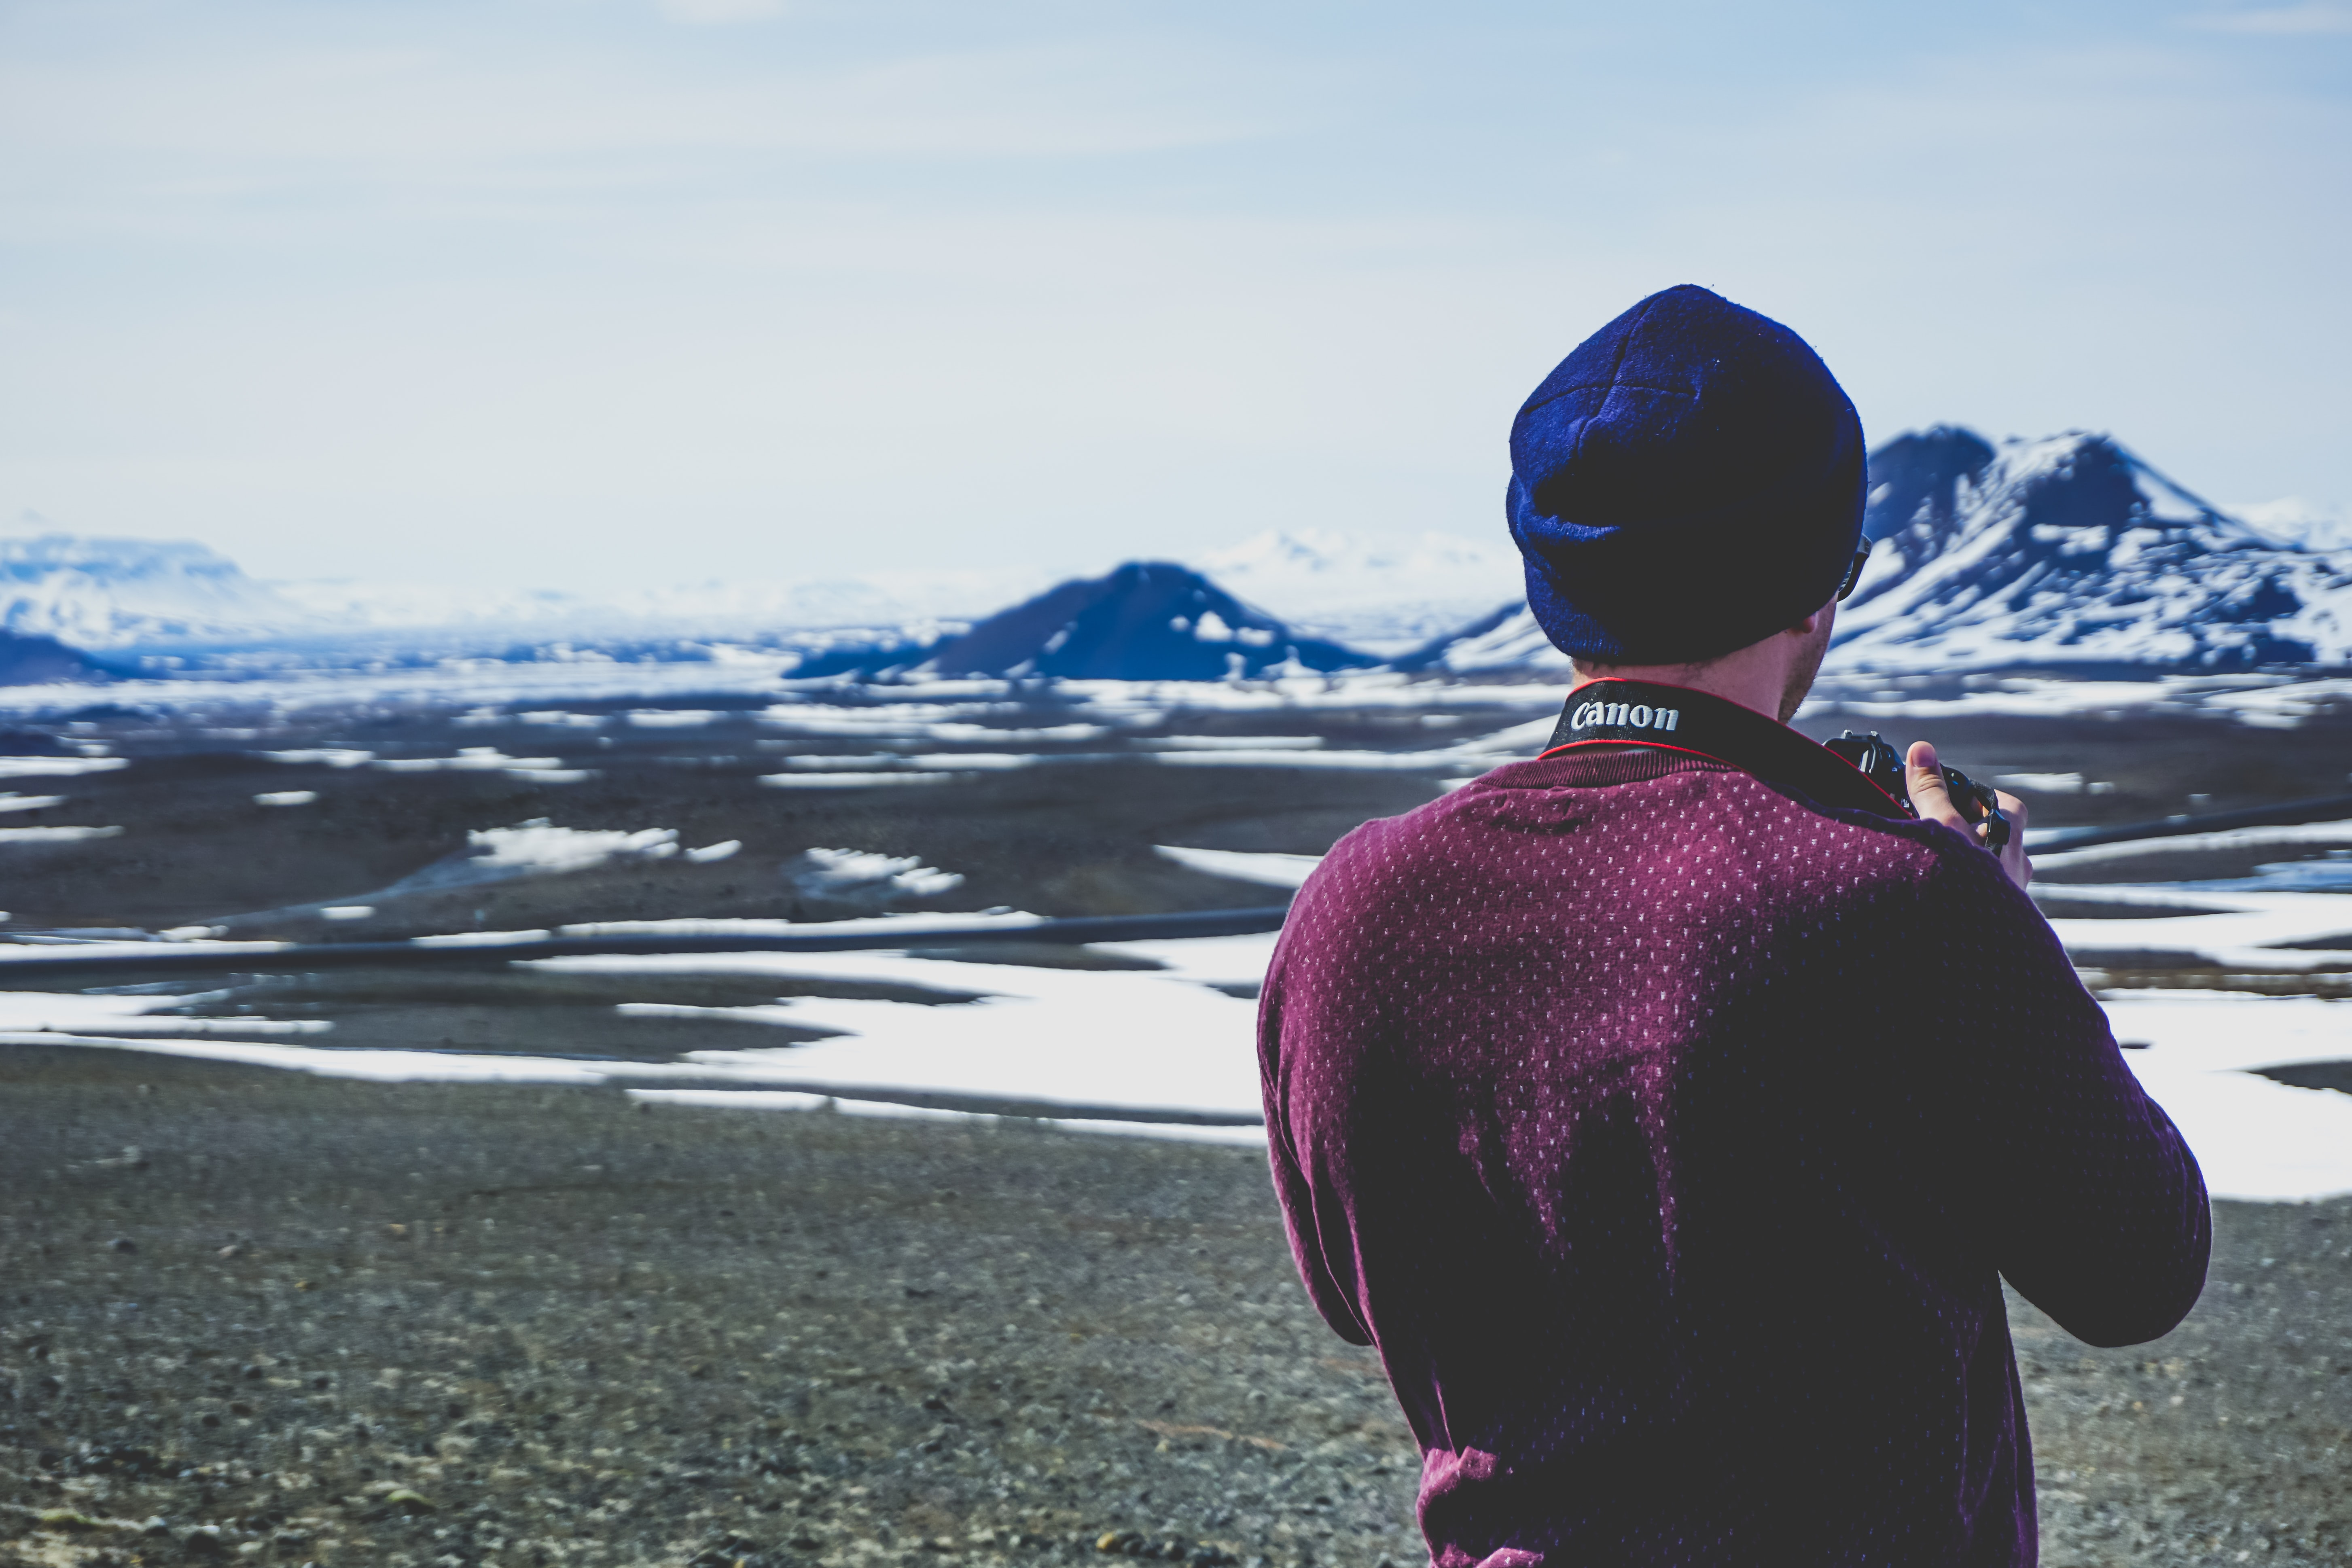 A male photographer snaps a photo of the mountains in Iceland on his Canon camera